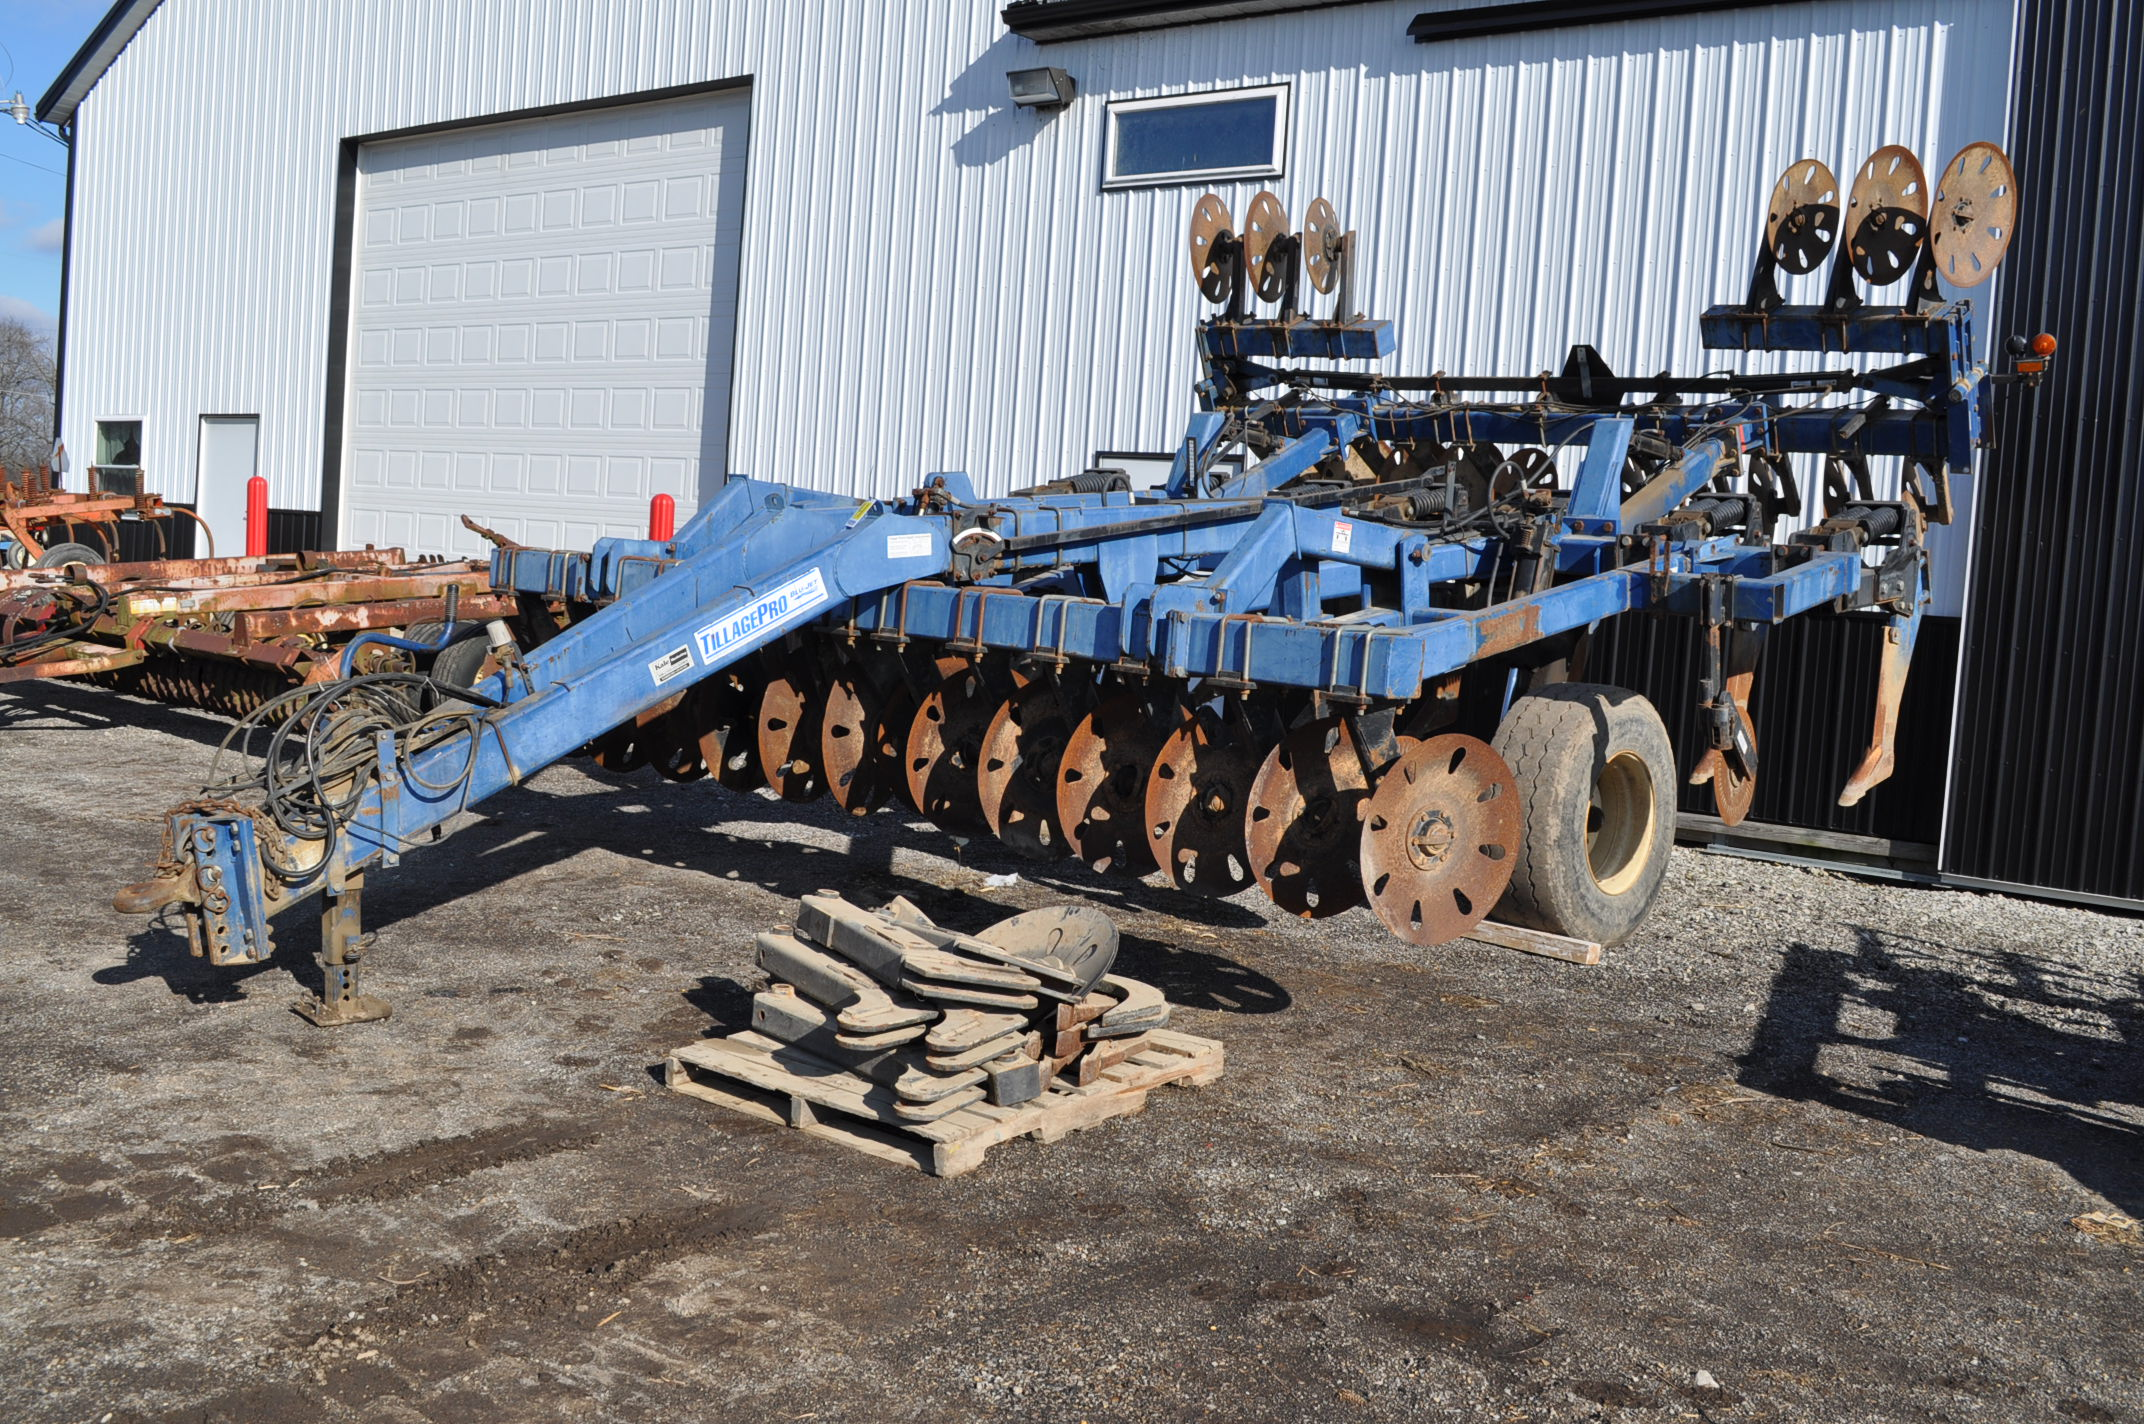 Blu-Jet Tillage Pro 7 shank inline ripper, front and rear hyd adjustable discs, sells with extra